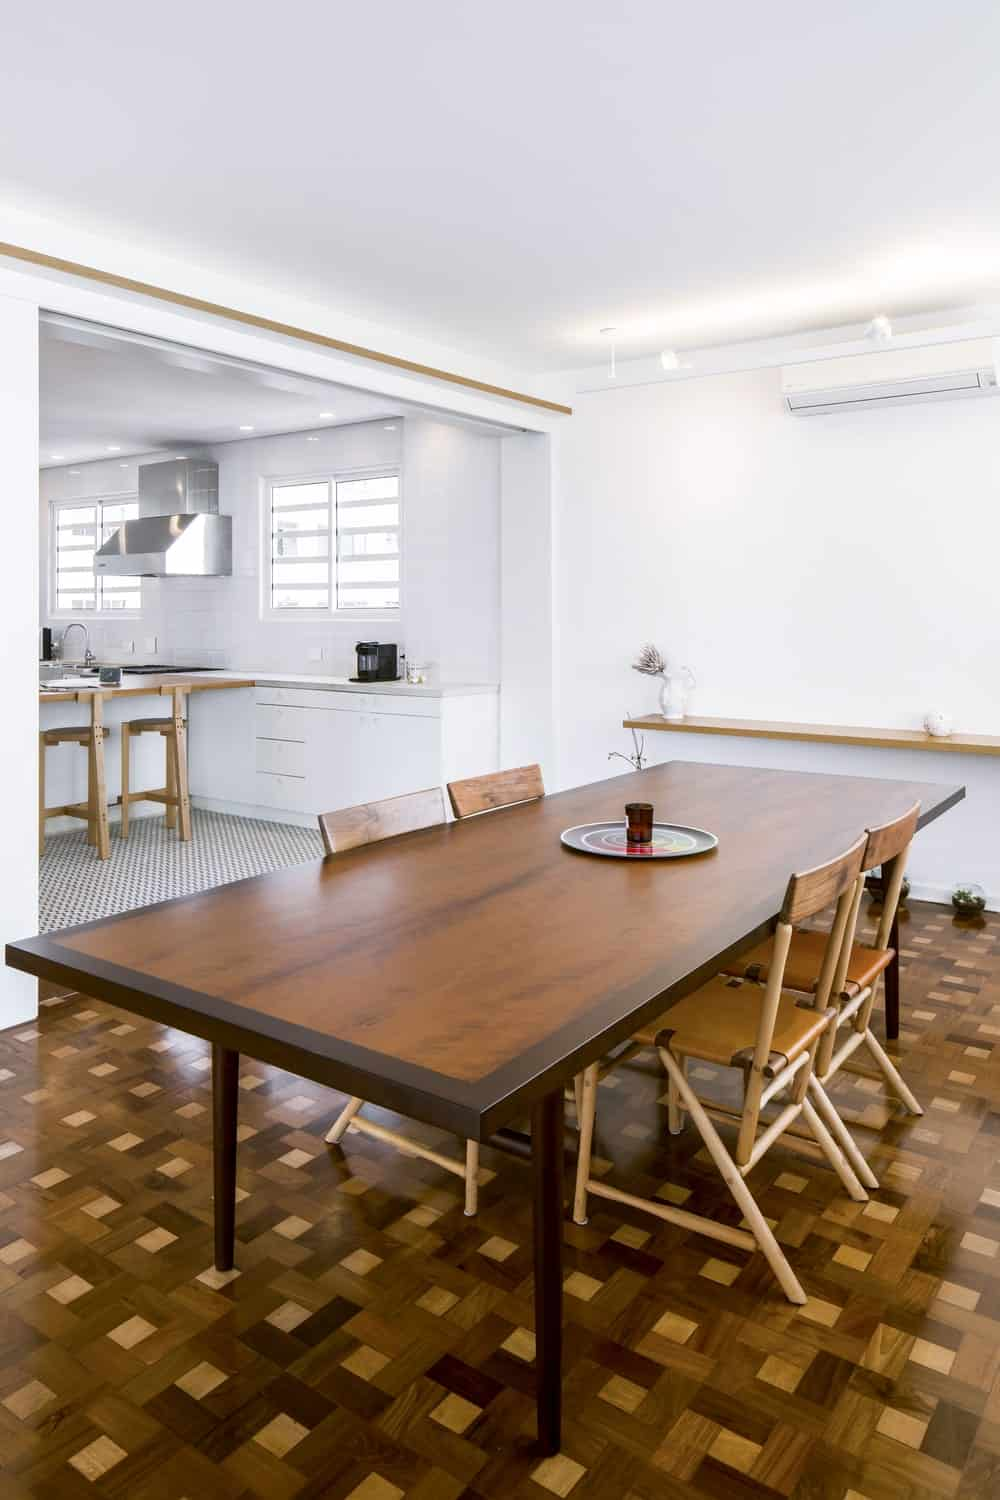 This is a closer look at the large rectangular dining table surrounded by simple chairs.